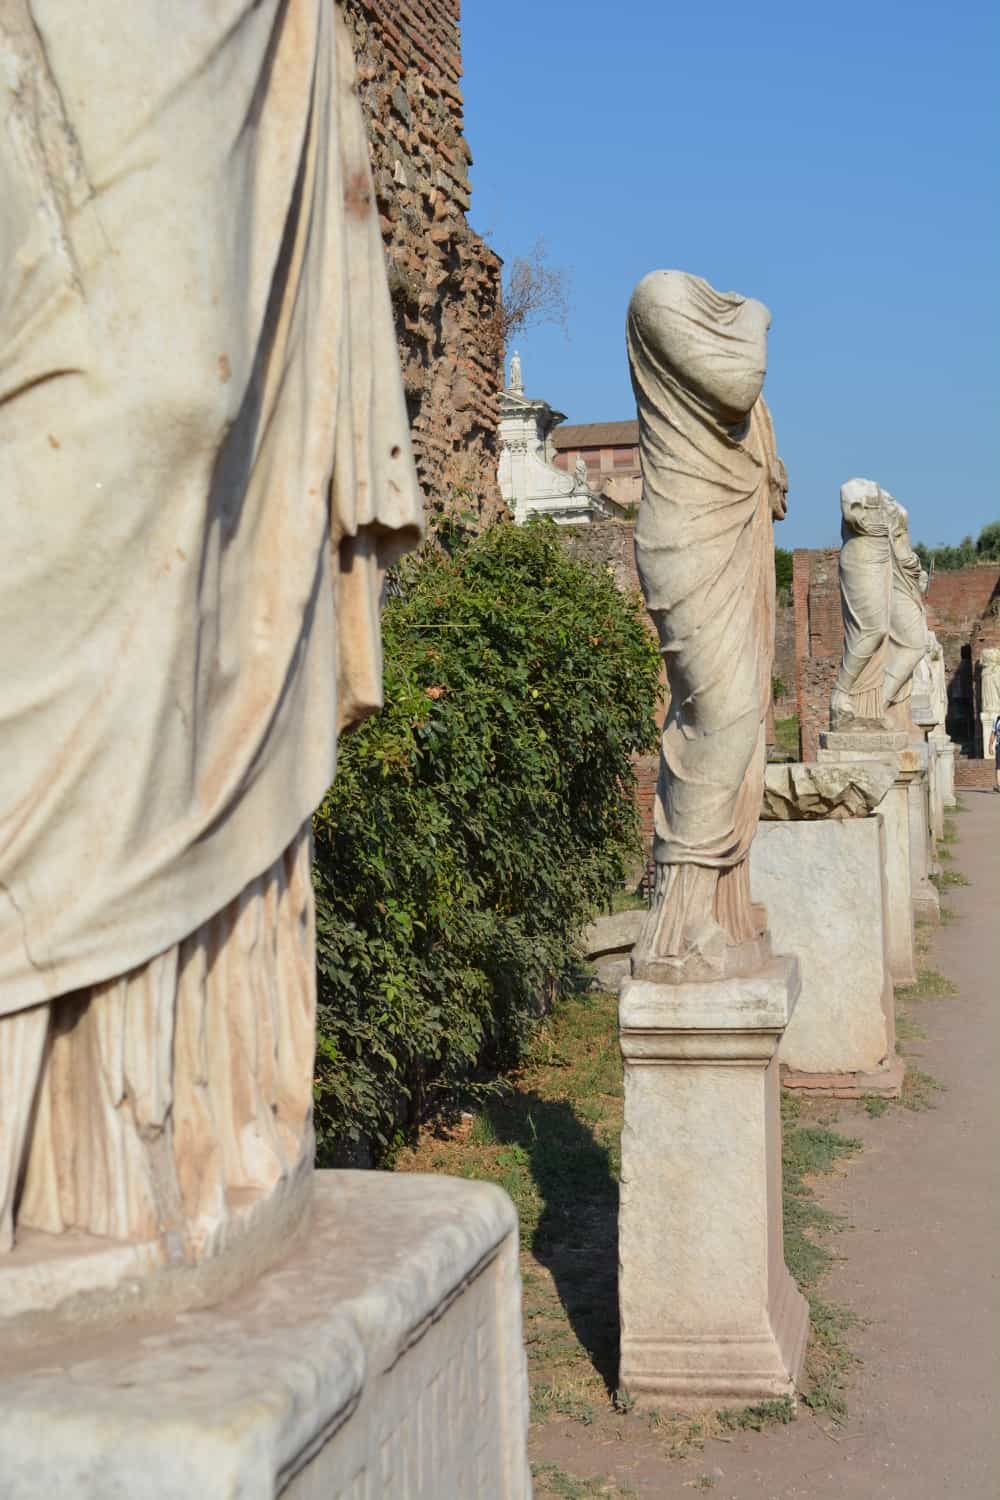 Statues in the House of the Vestal Virgins